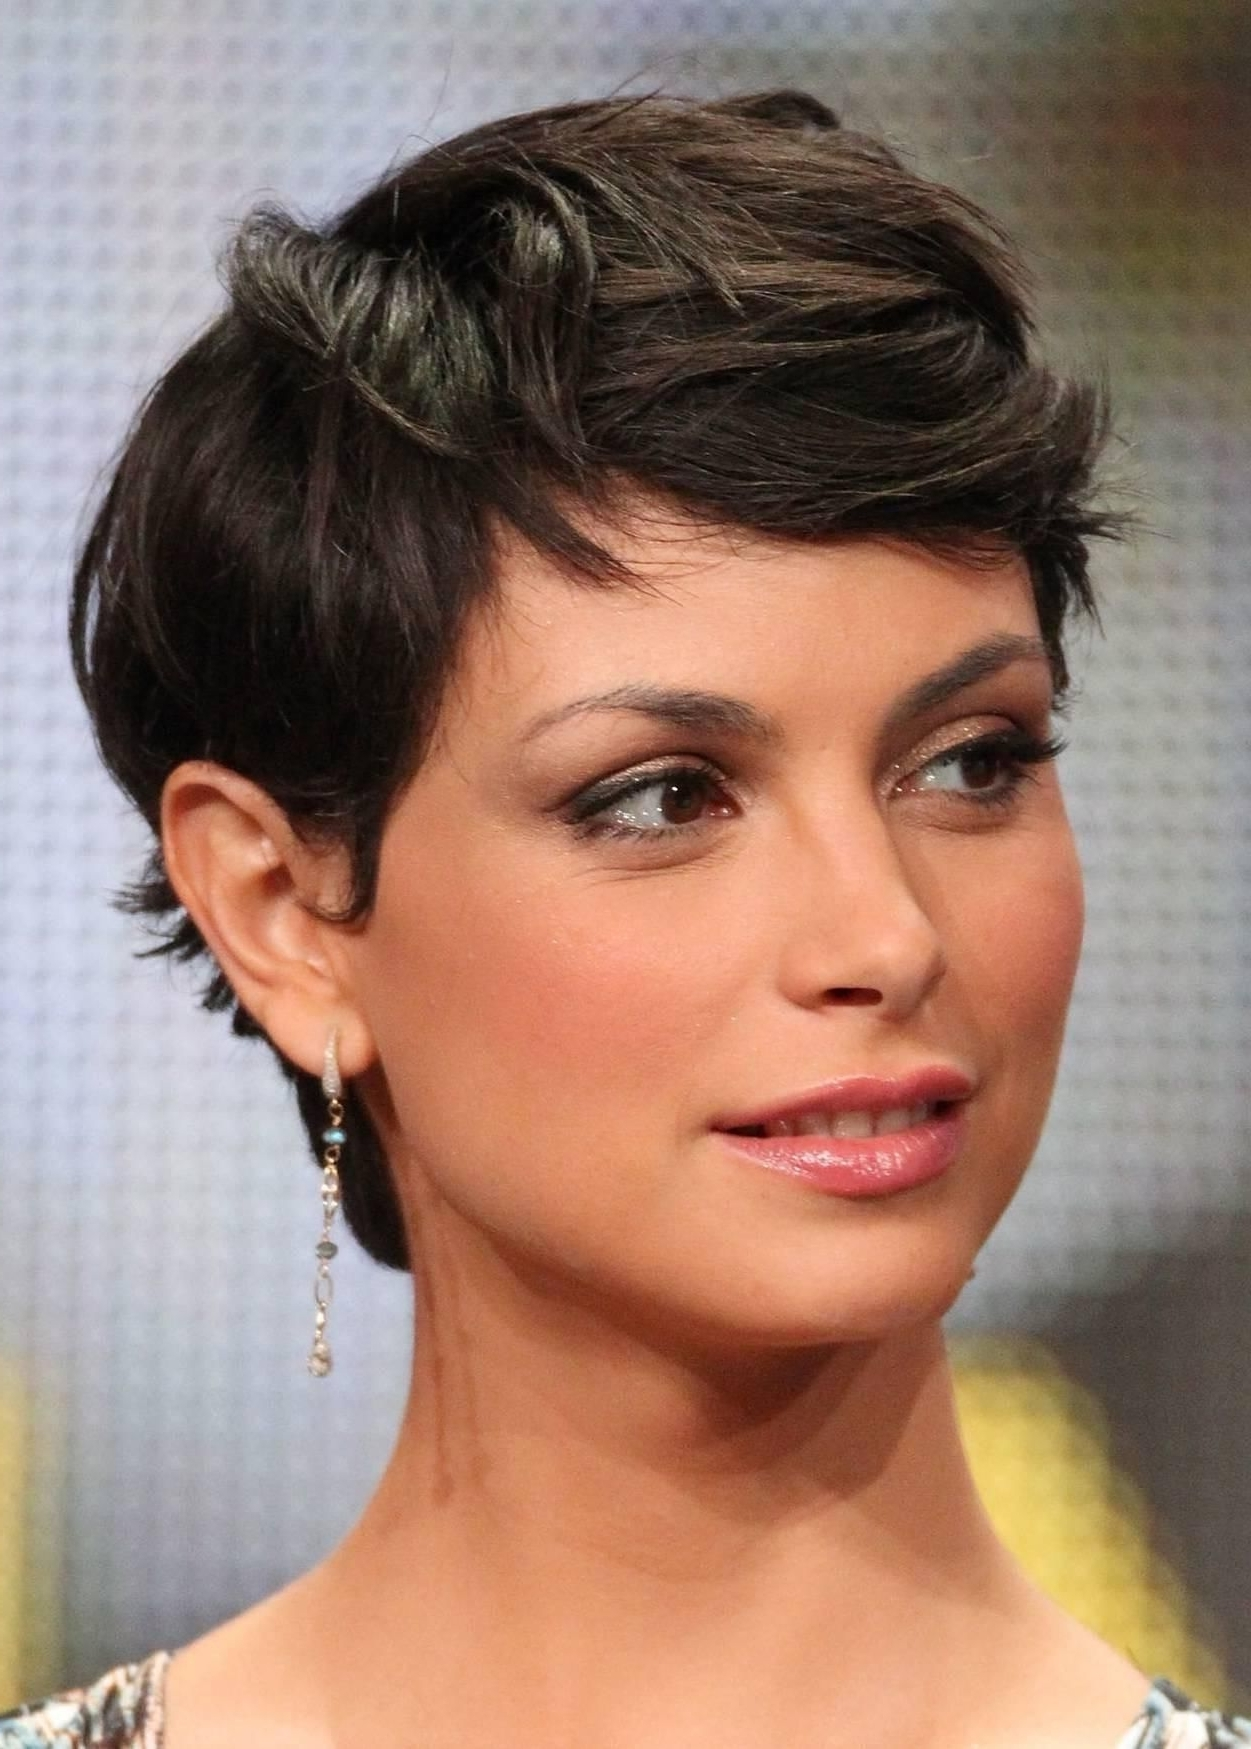 Best Pixie Haircuts For Your Face Shape | Wardrobelooks With Regard To Most Popular Pixie Hairstyles For Diamond Shaped Face (View 8 of 15)